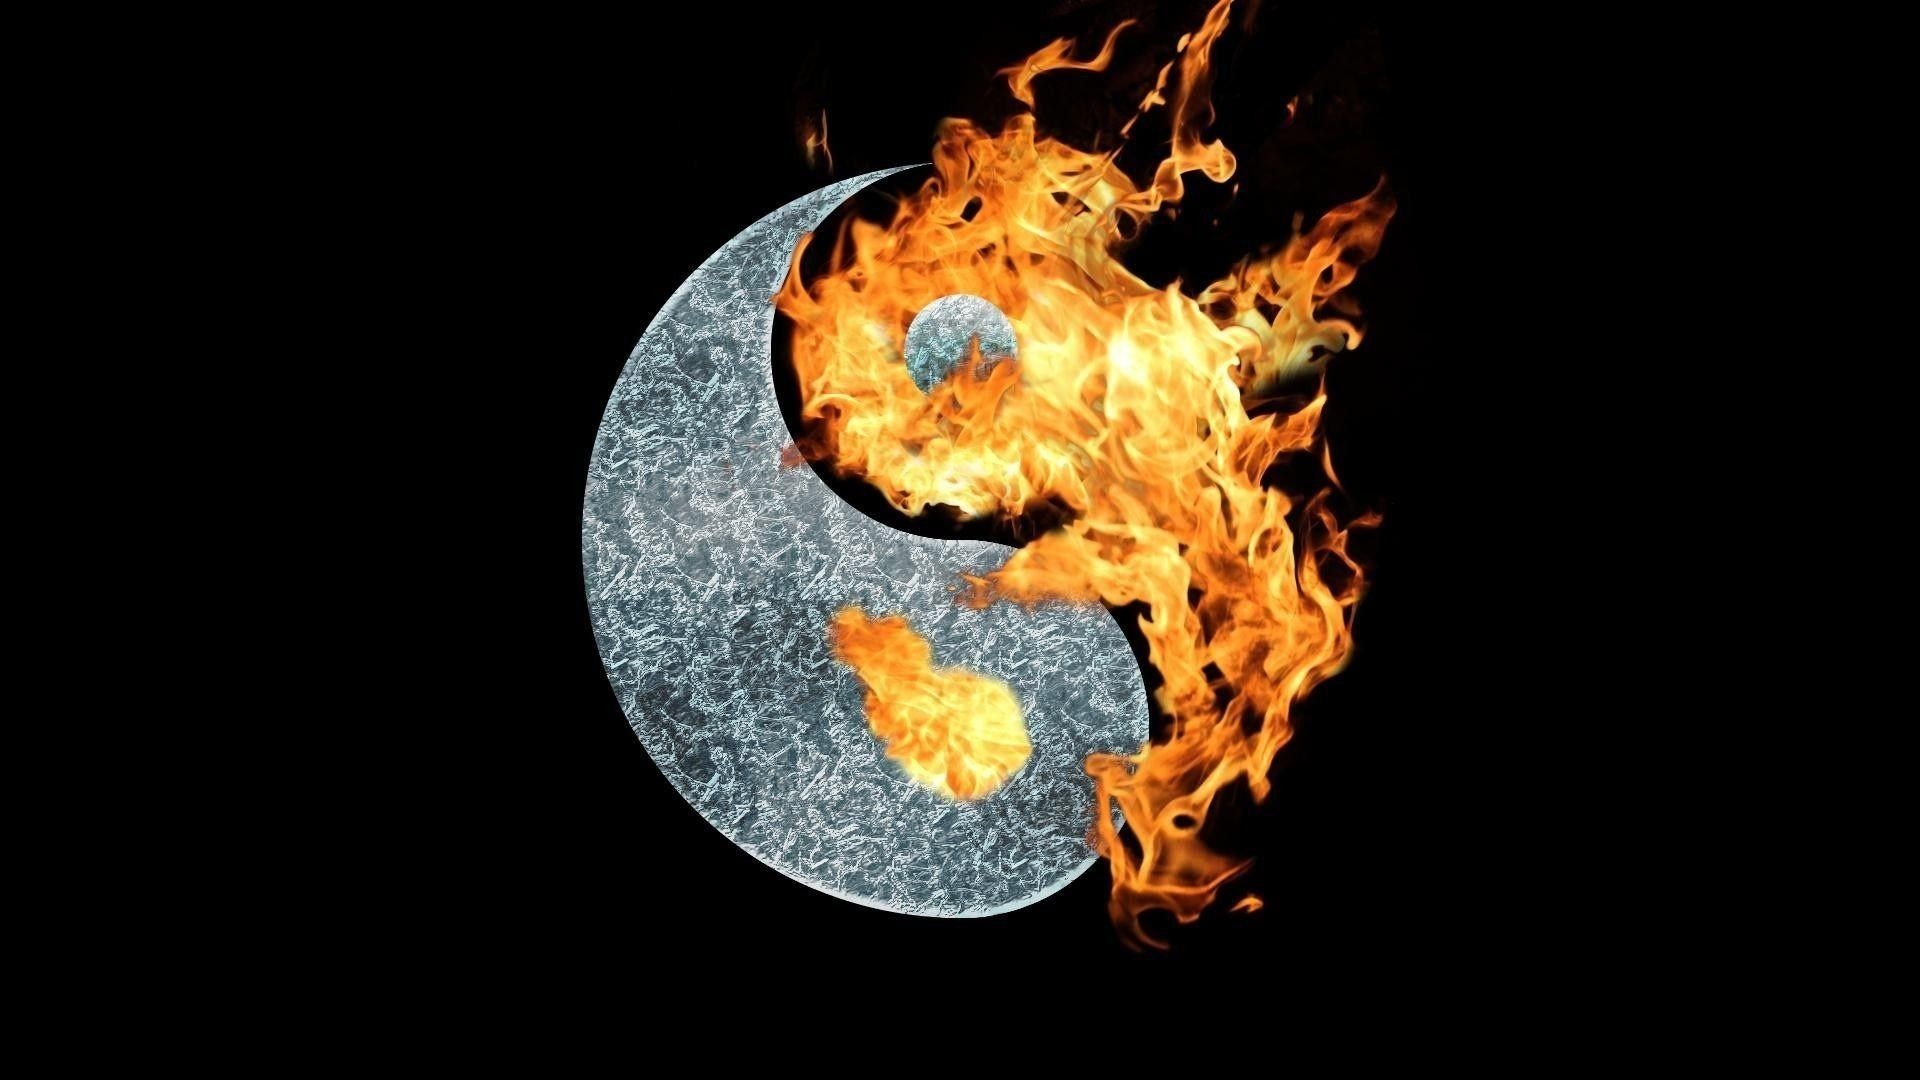 Res: 1920x1080, new cool fire yin yang symbol wallpaper hd for des